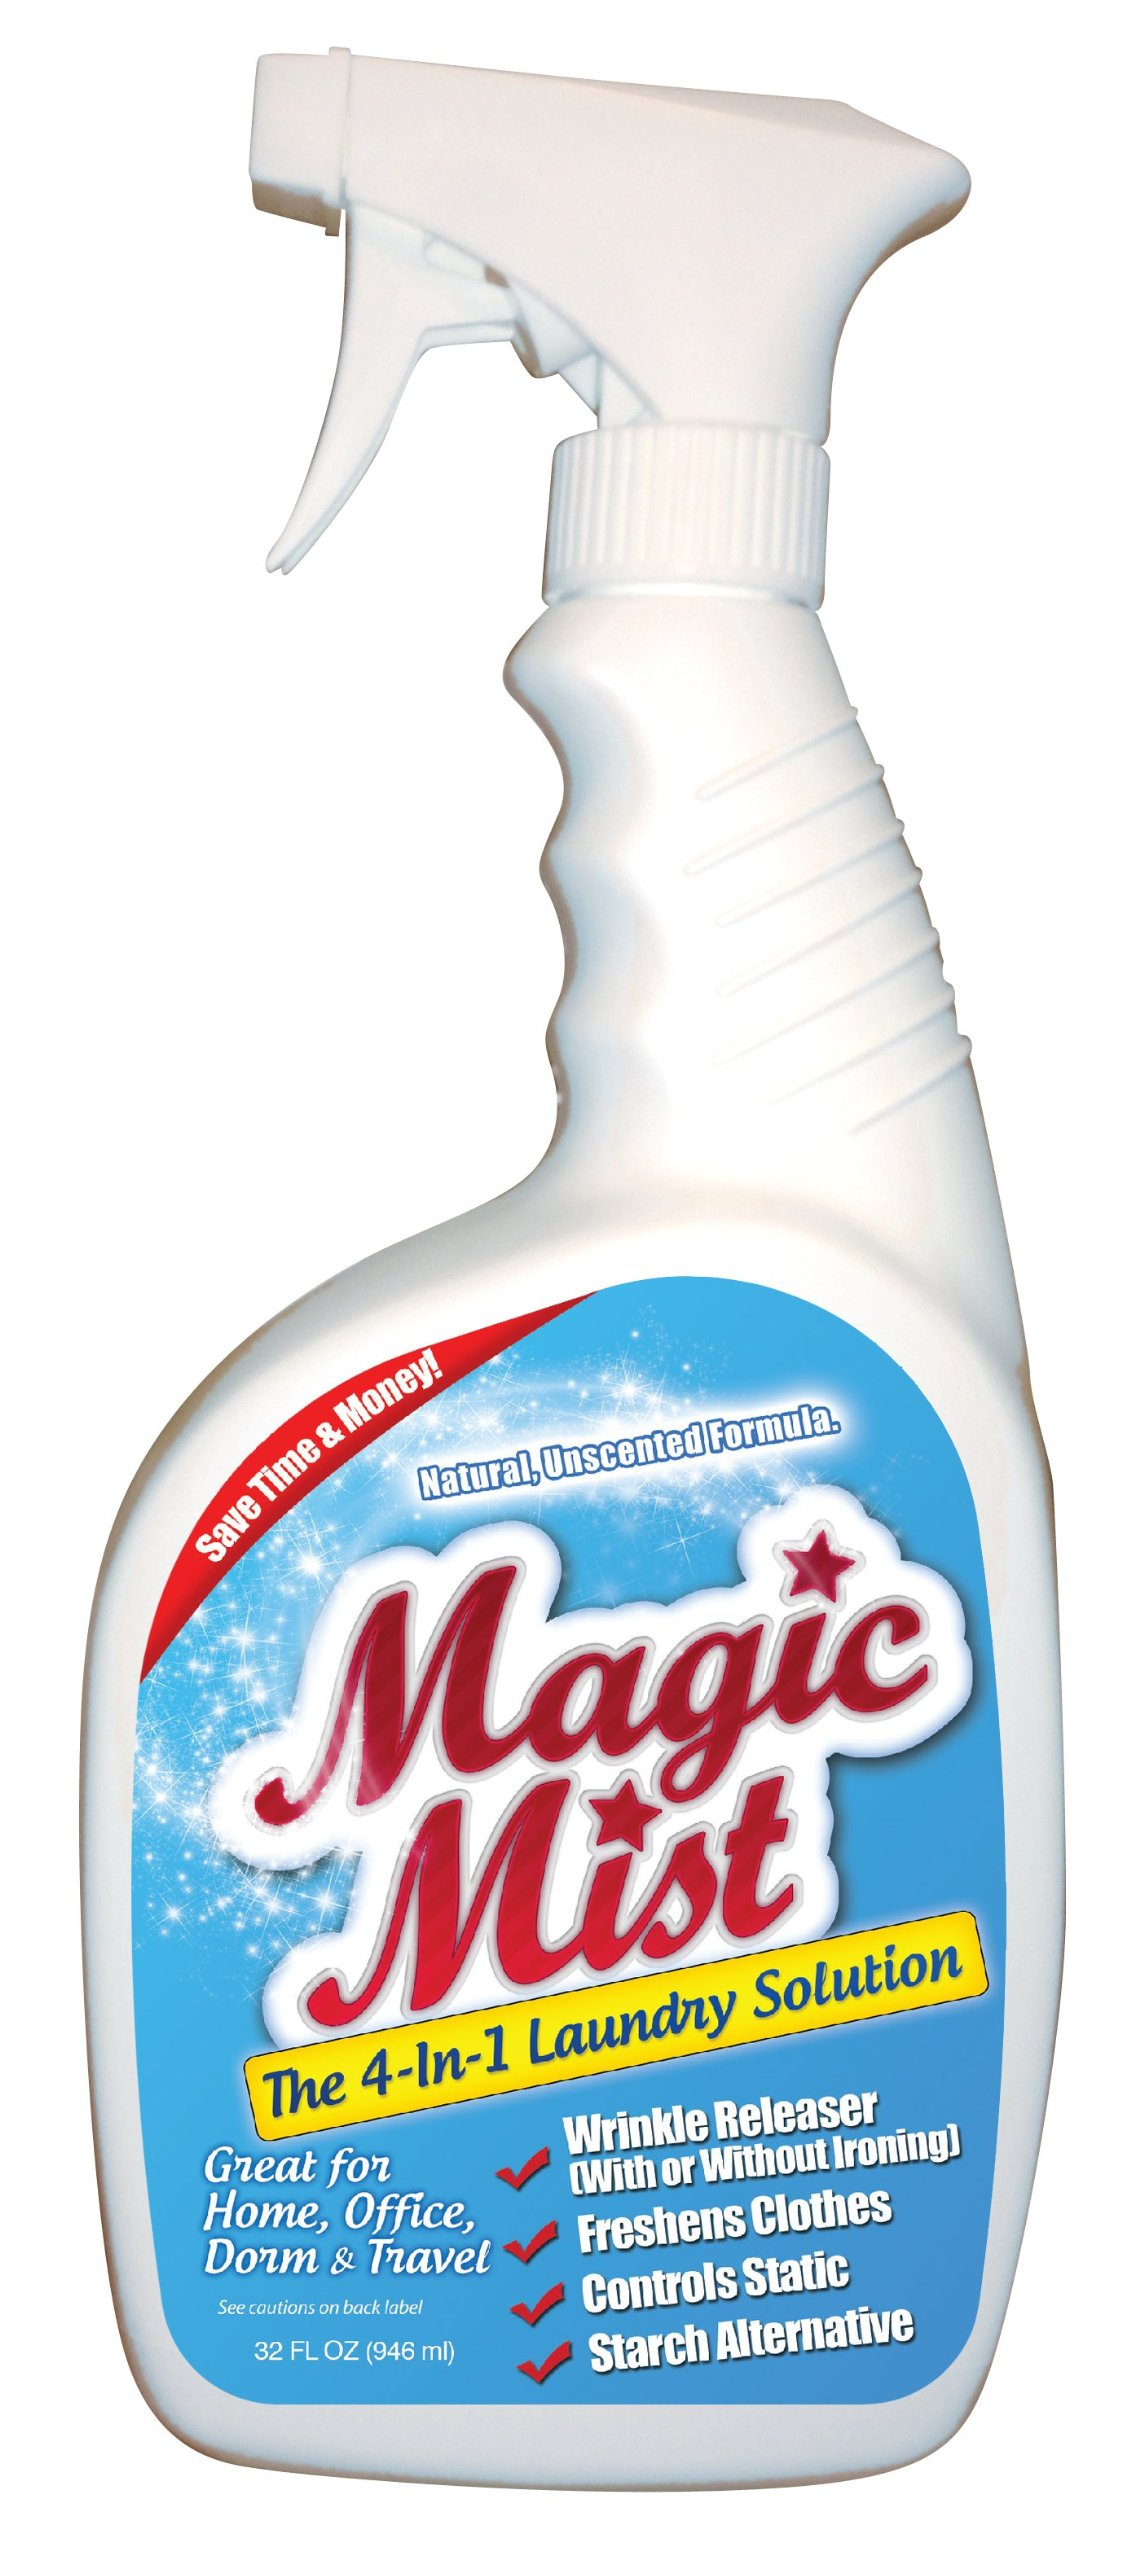 Magic Mist - All Natural - Clear - 32 Oz - Wrinkle Releaser, Odor Neutralizer, Controls Static, Starch Alternative